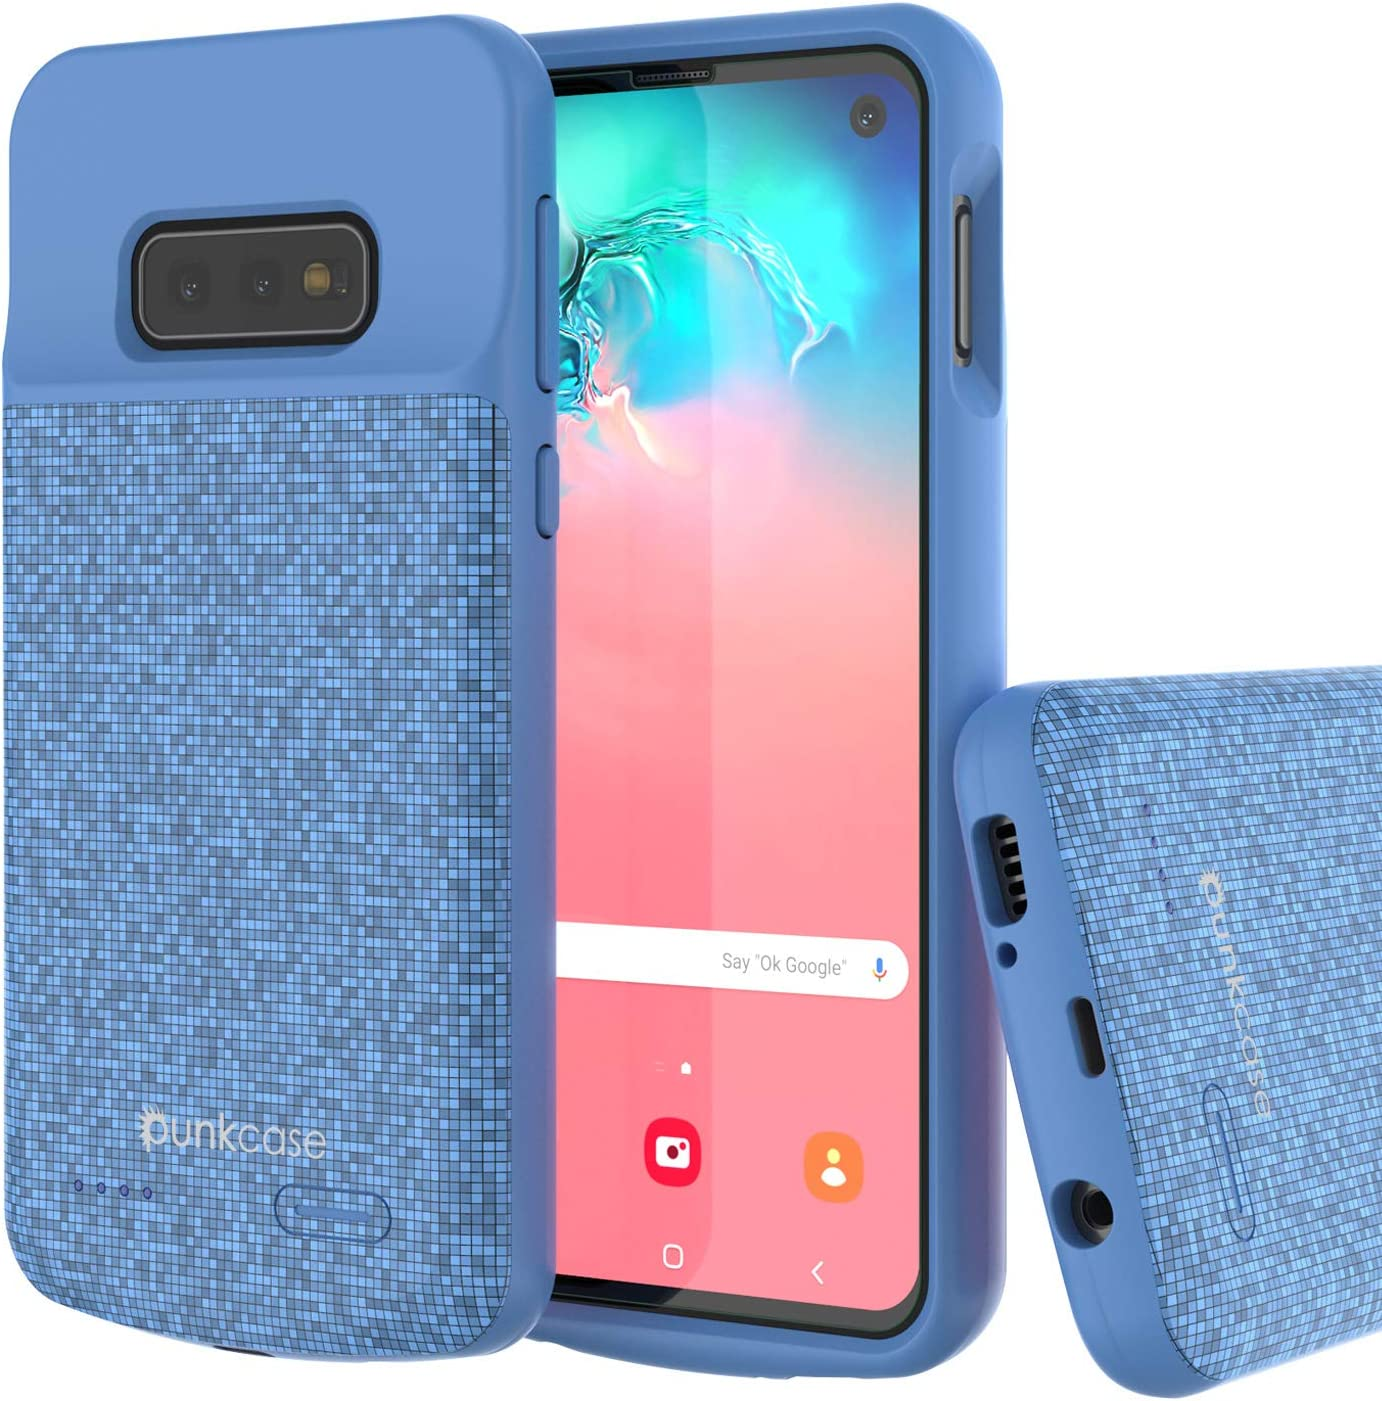 PunkJuice S10e Battery Case, 4700mAh Fast Charging Extended Power Bank W/Screen Protector | IntelSwitch | Slim, Secure and Reliable Compatible W/Samsung Galaxy S10e Edge [Blue]